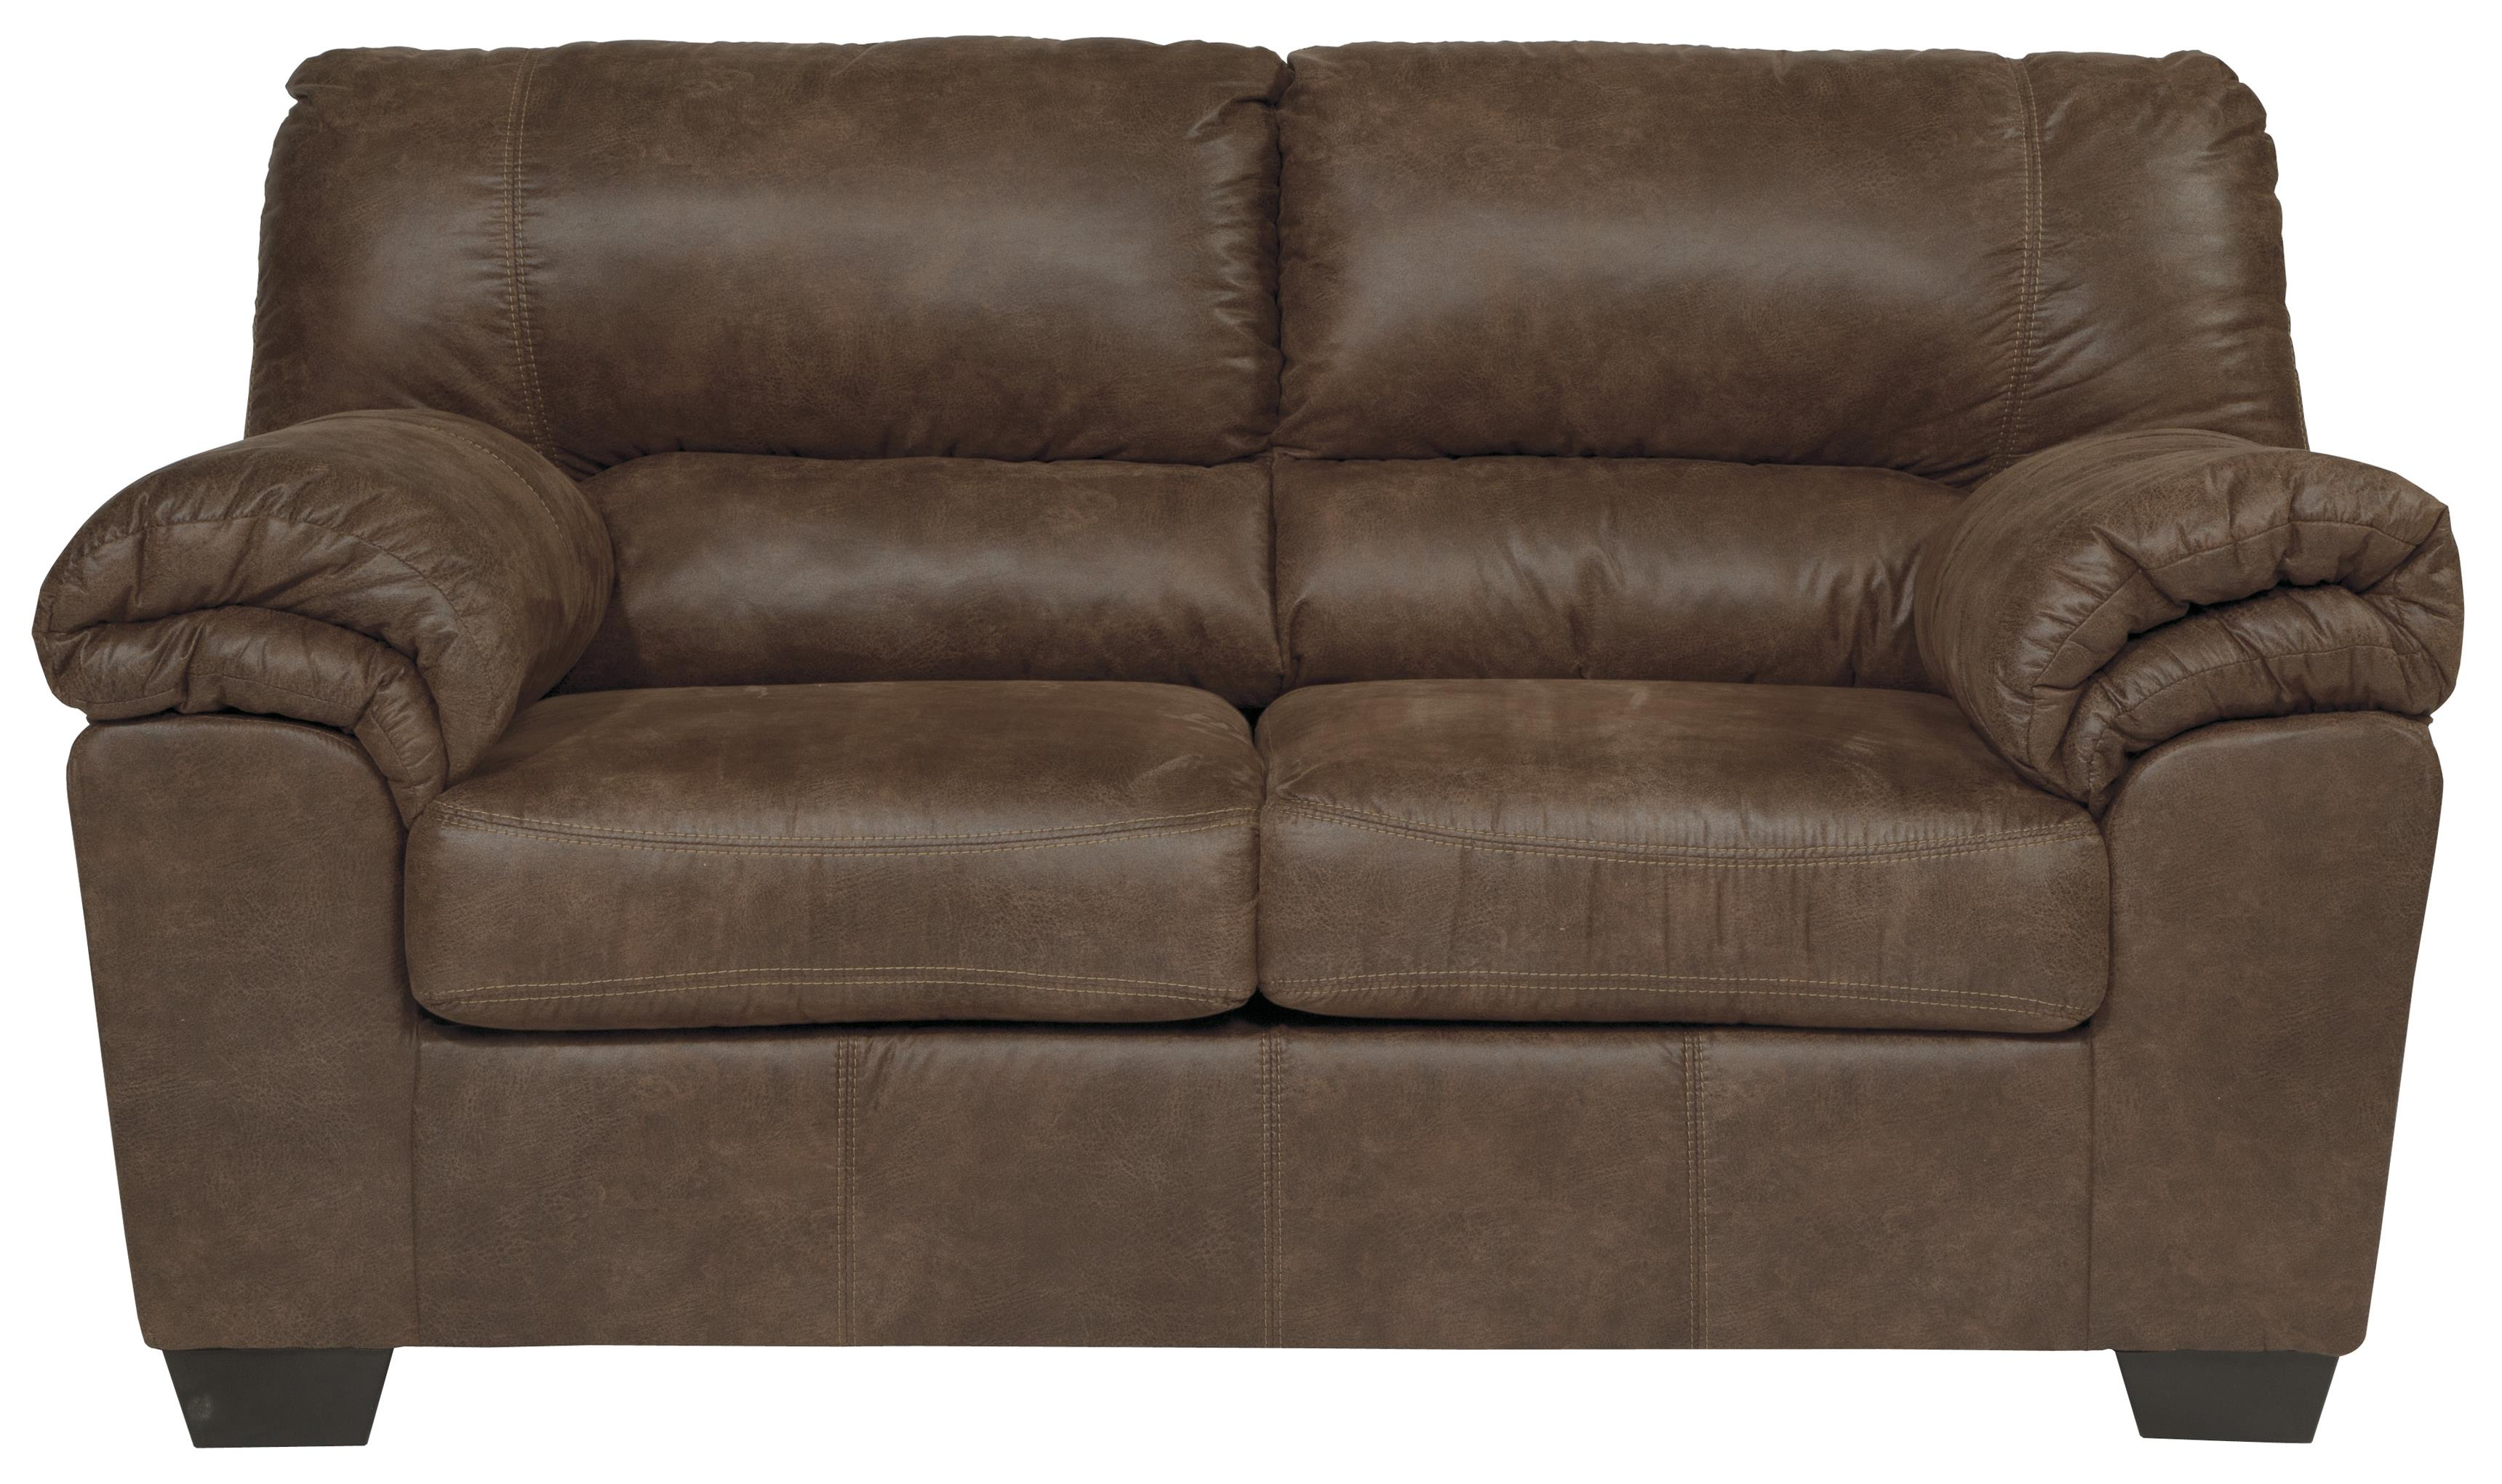 Signature Design by Ashley Bladen Loveseat - Item Number: 1200035